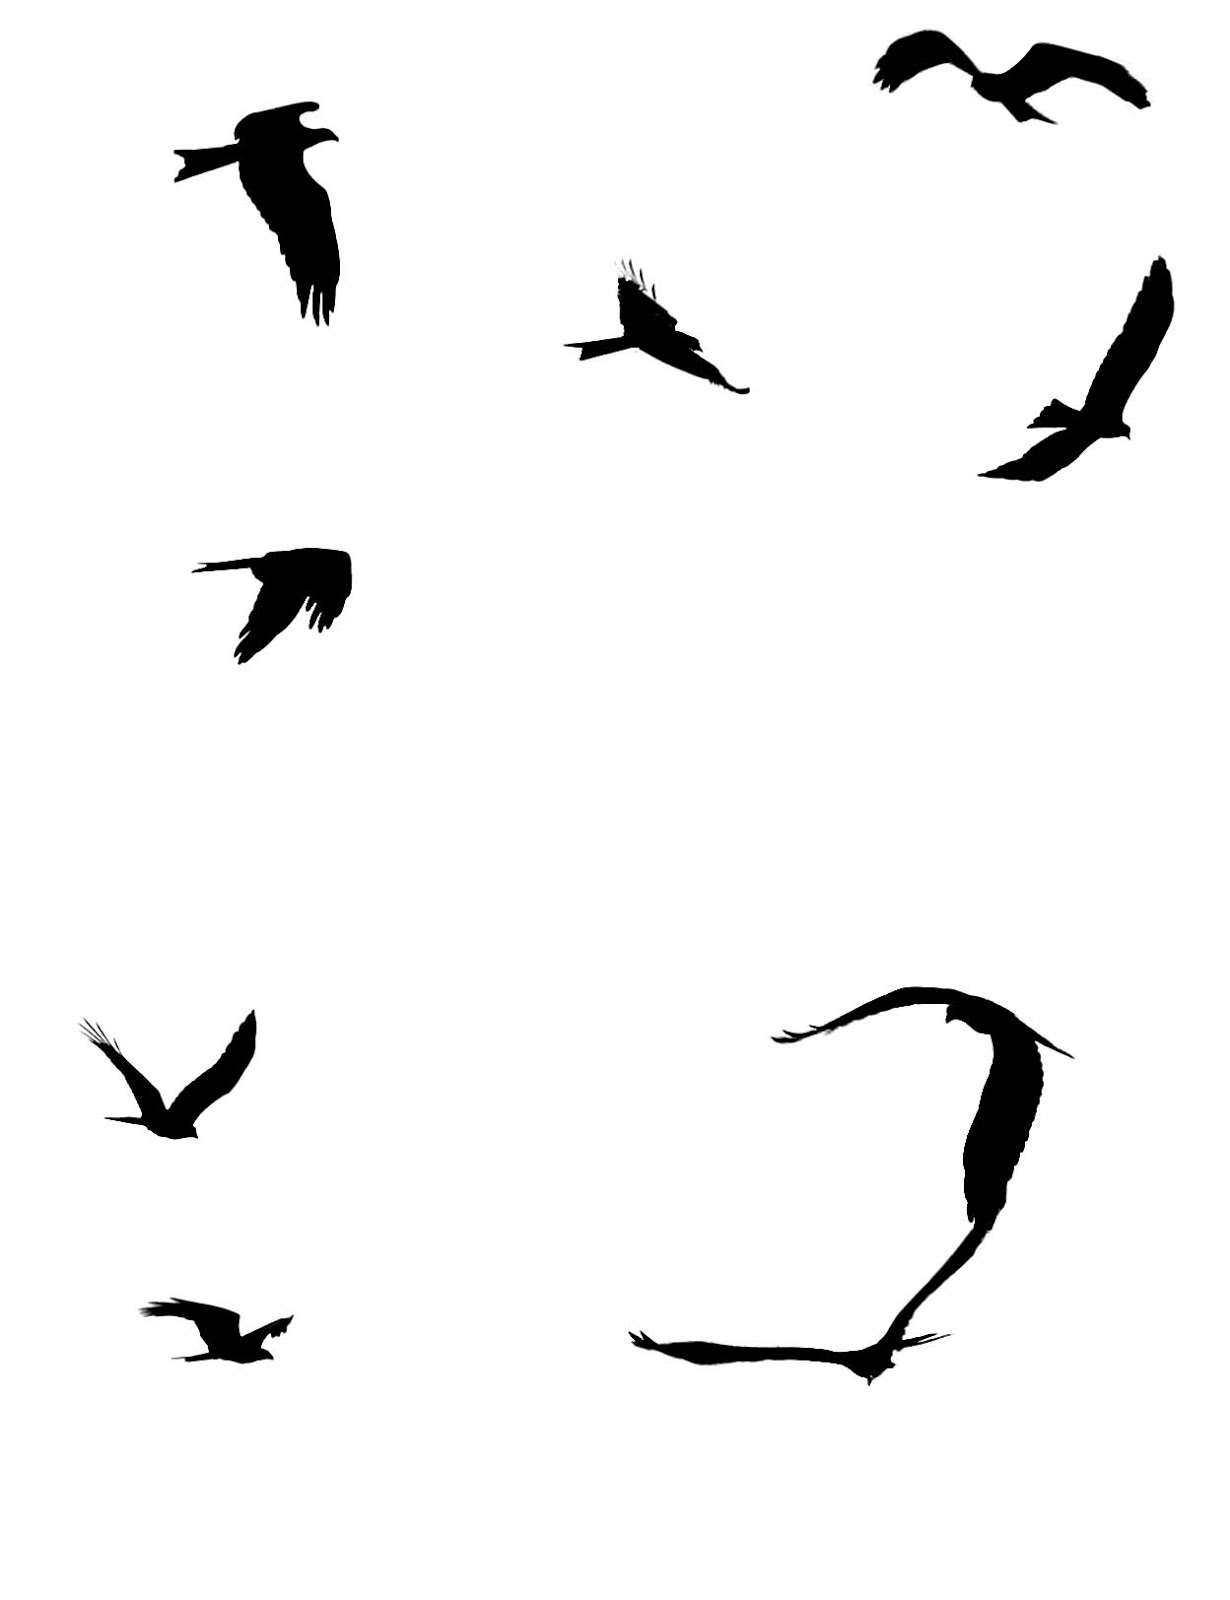 1230x1600 Stock Pictures Silhouettes Of Birds In Flight